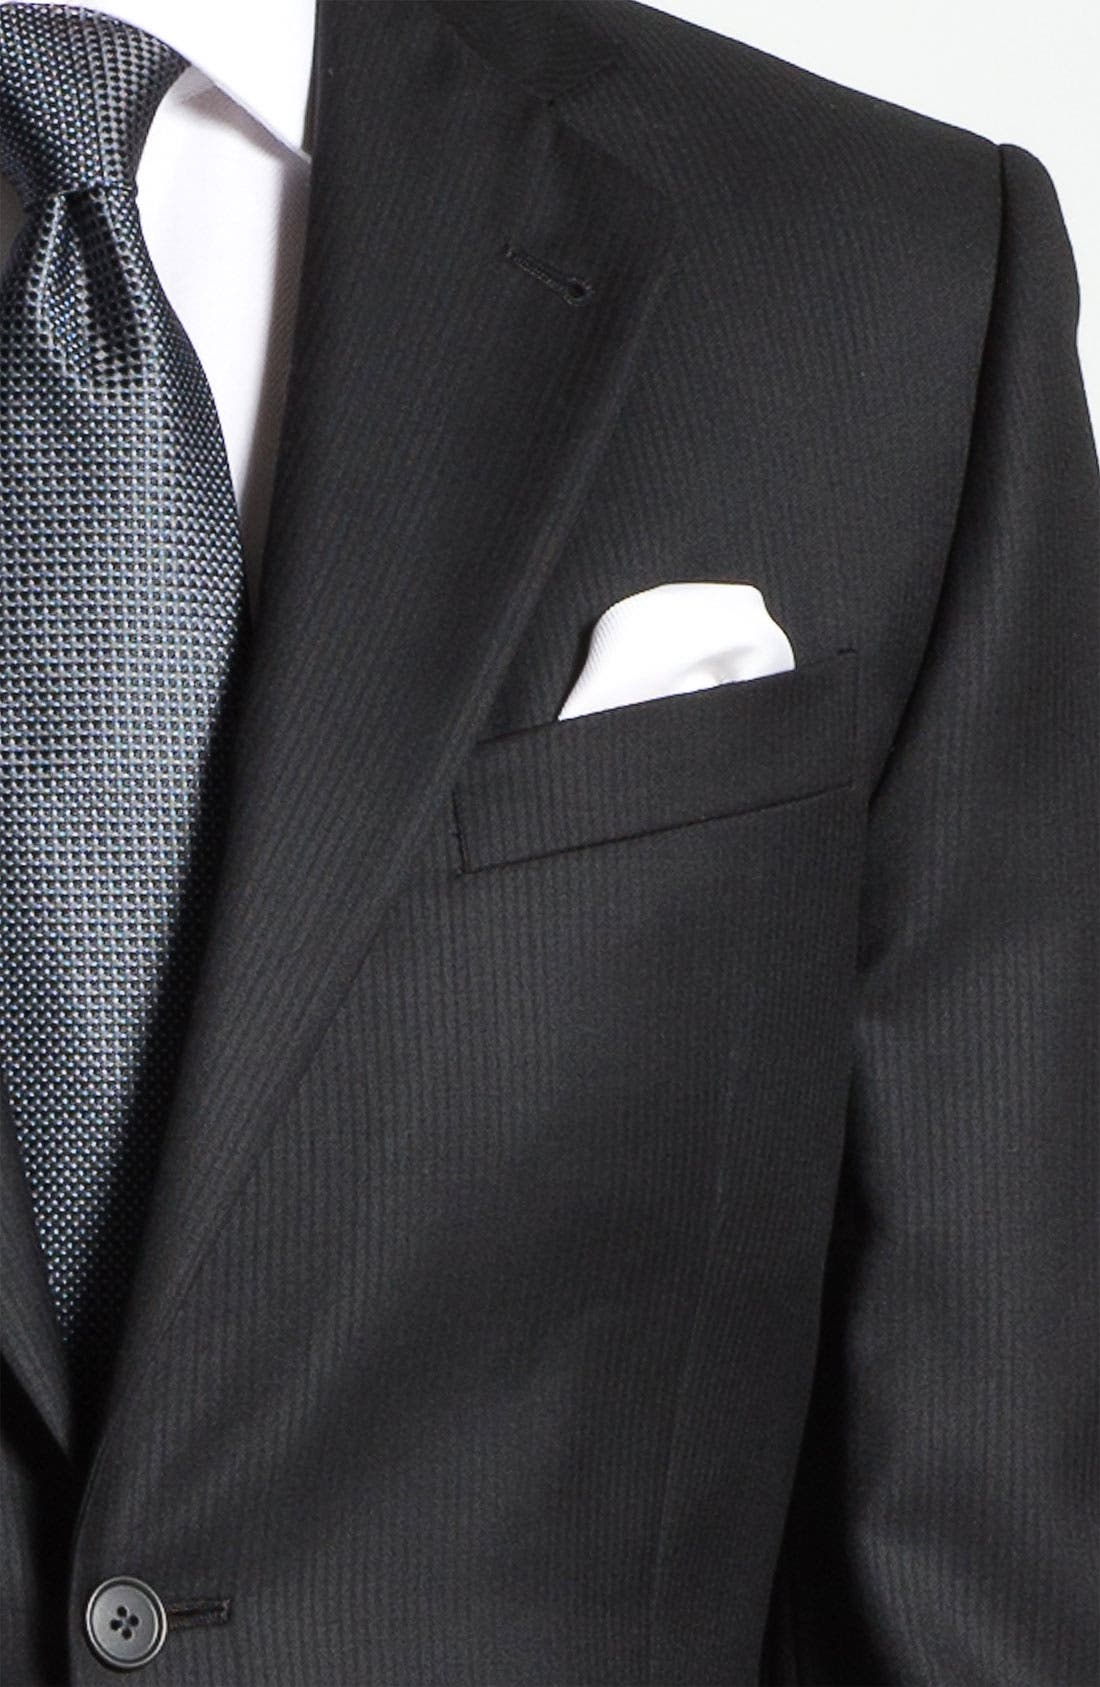 Alternate Image 5  - Joseph Abboud Black Wool Suit